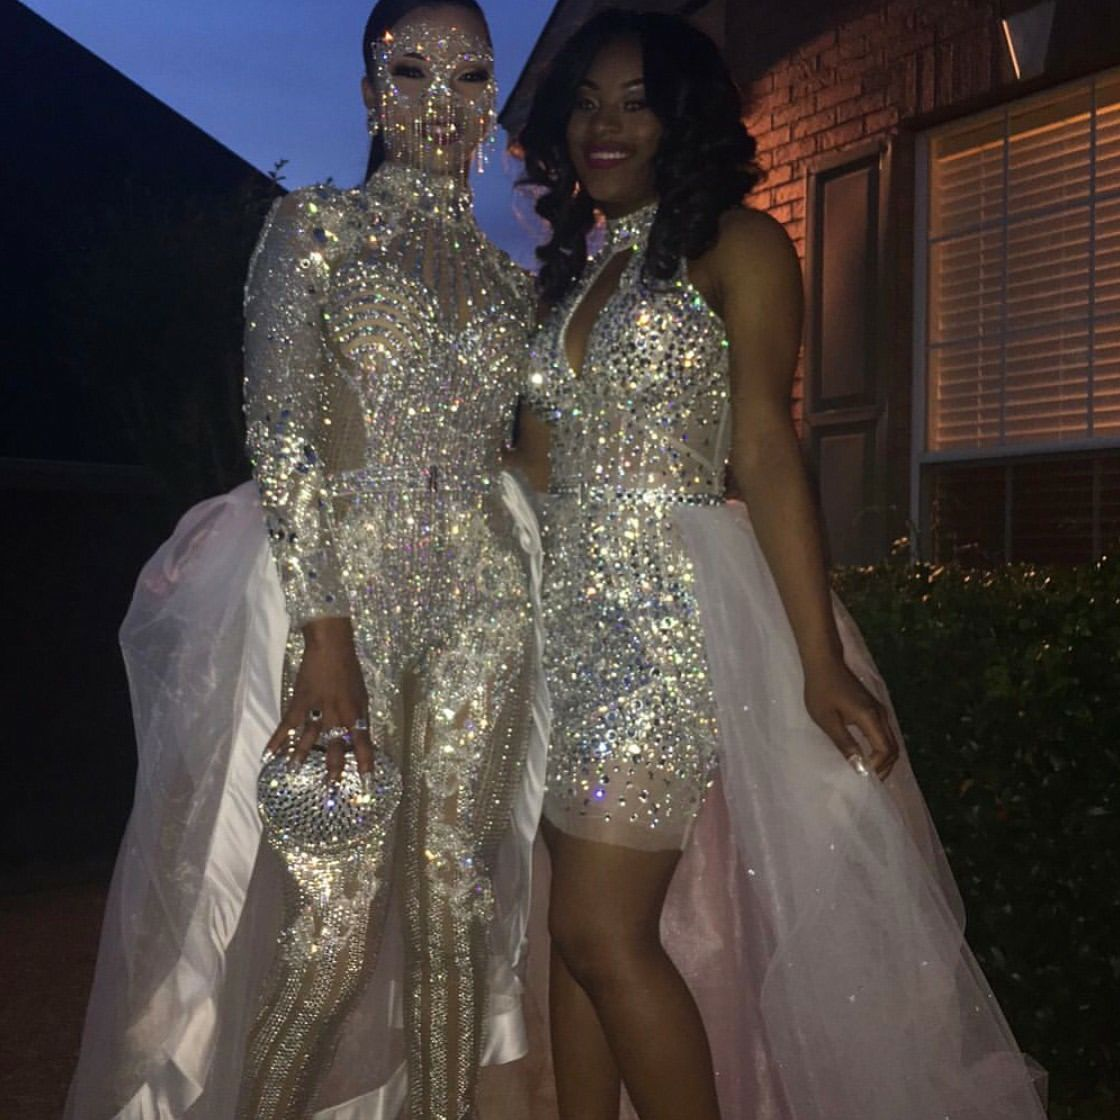 Pin by Tyeese Goodwin on Blinged Out | Prom outfits, Cute ...